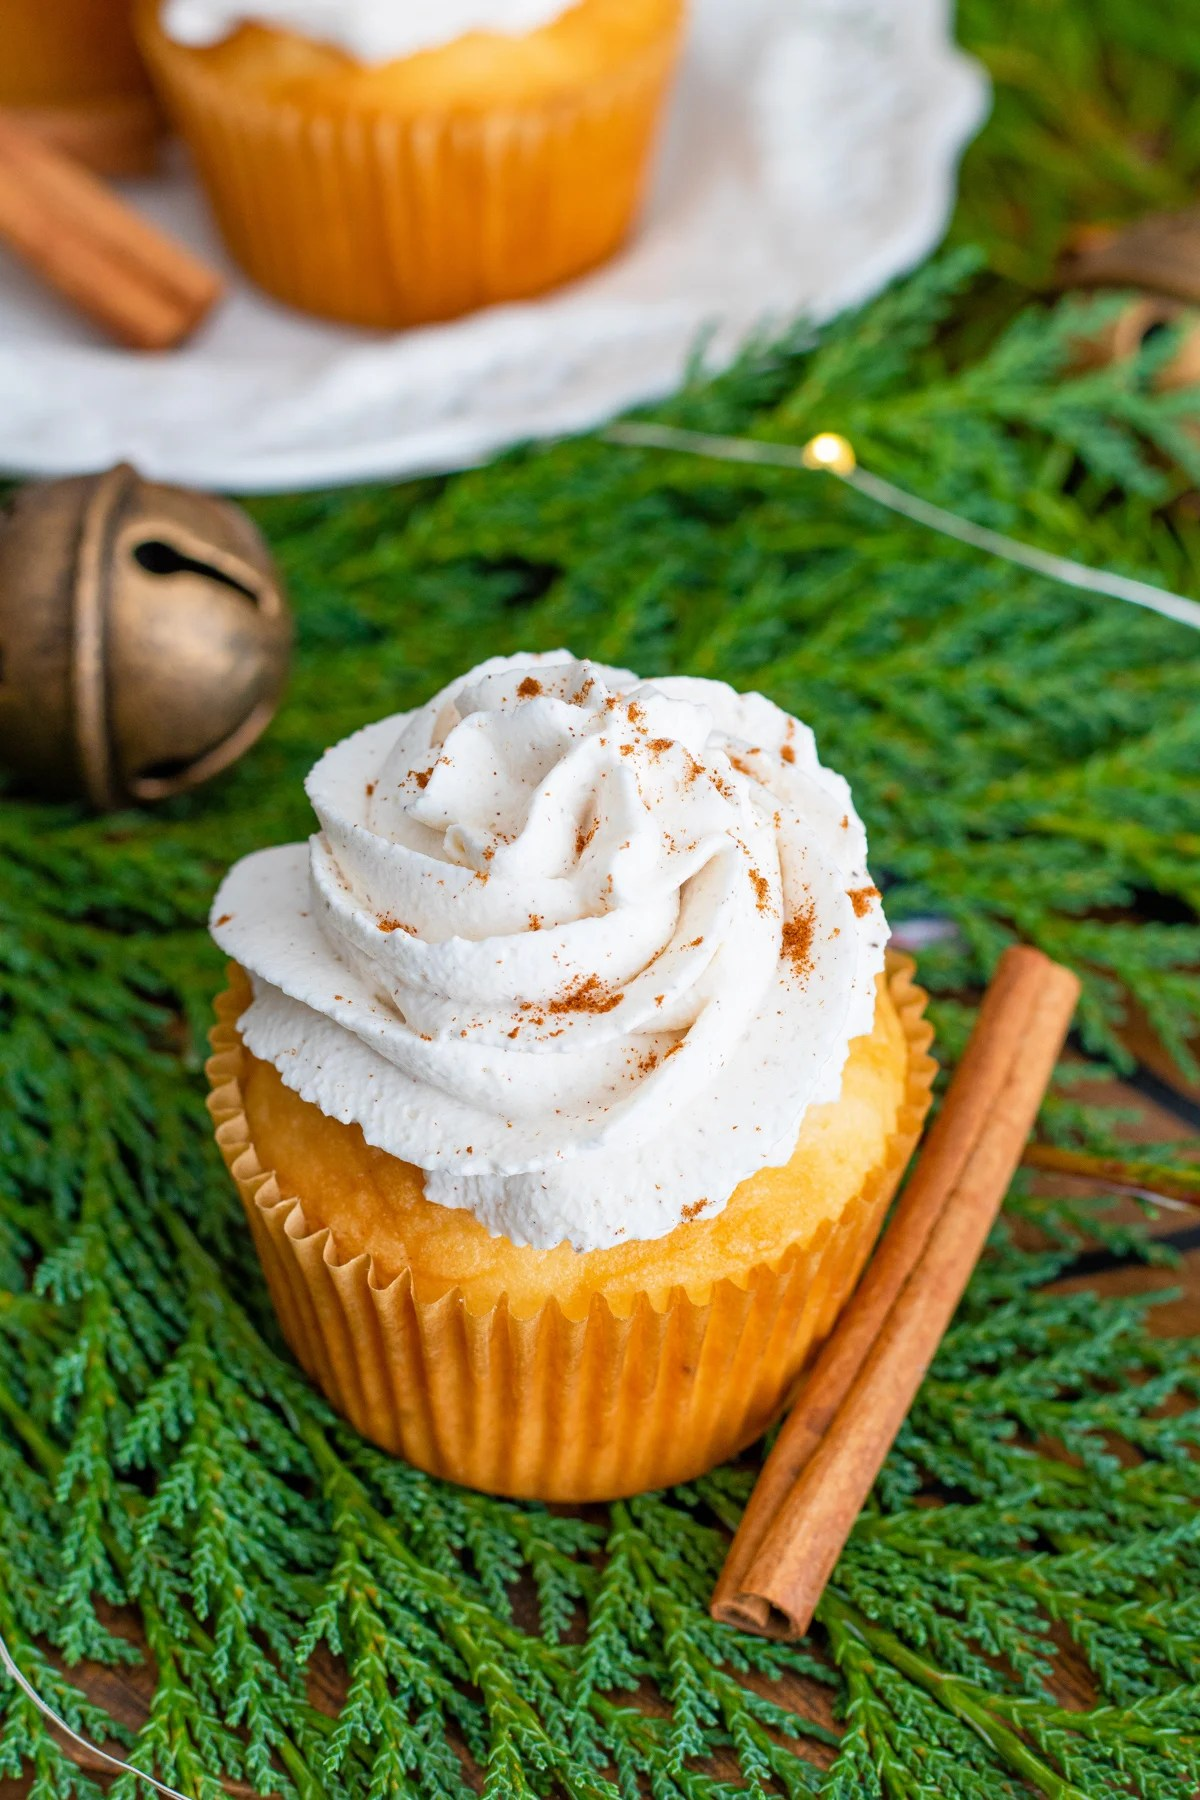 Overhead of eggnog cupcakes with cinnamon stick next to it